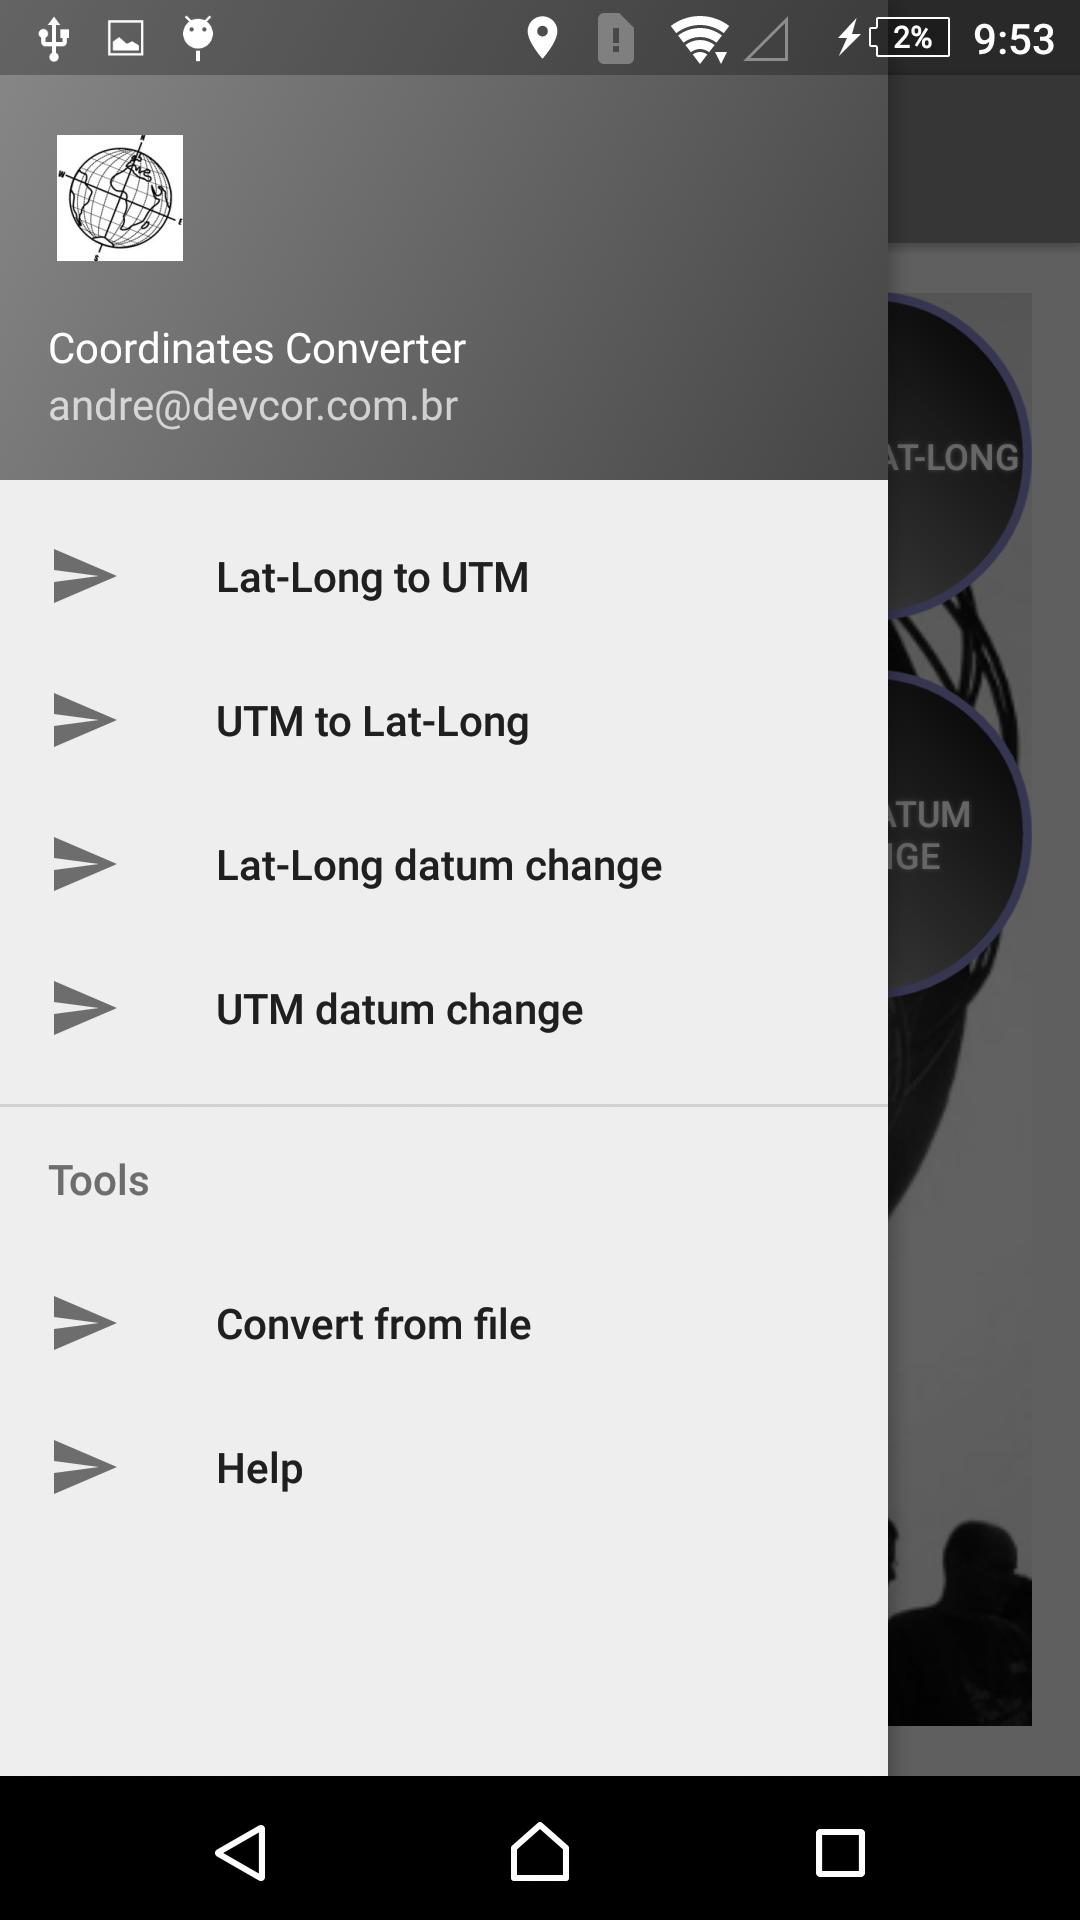 Coordinates Converter for Android - APK Download